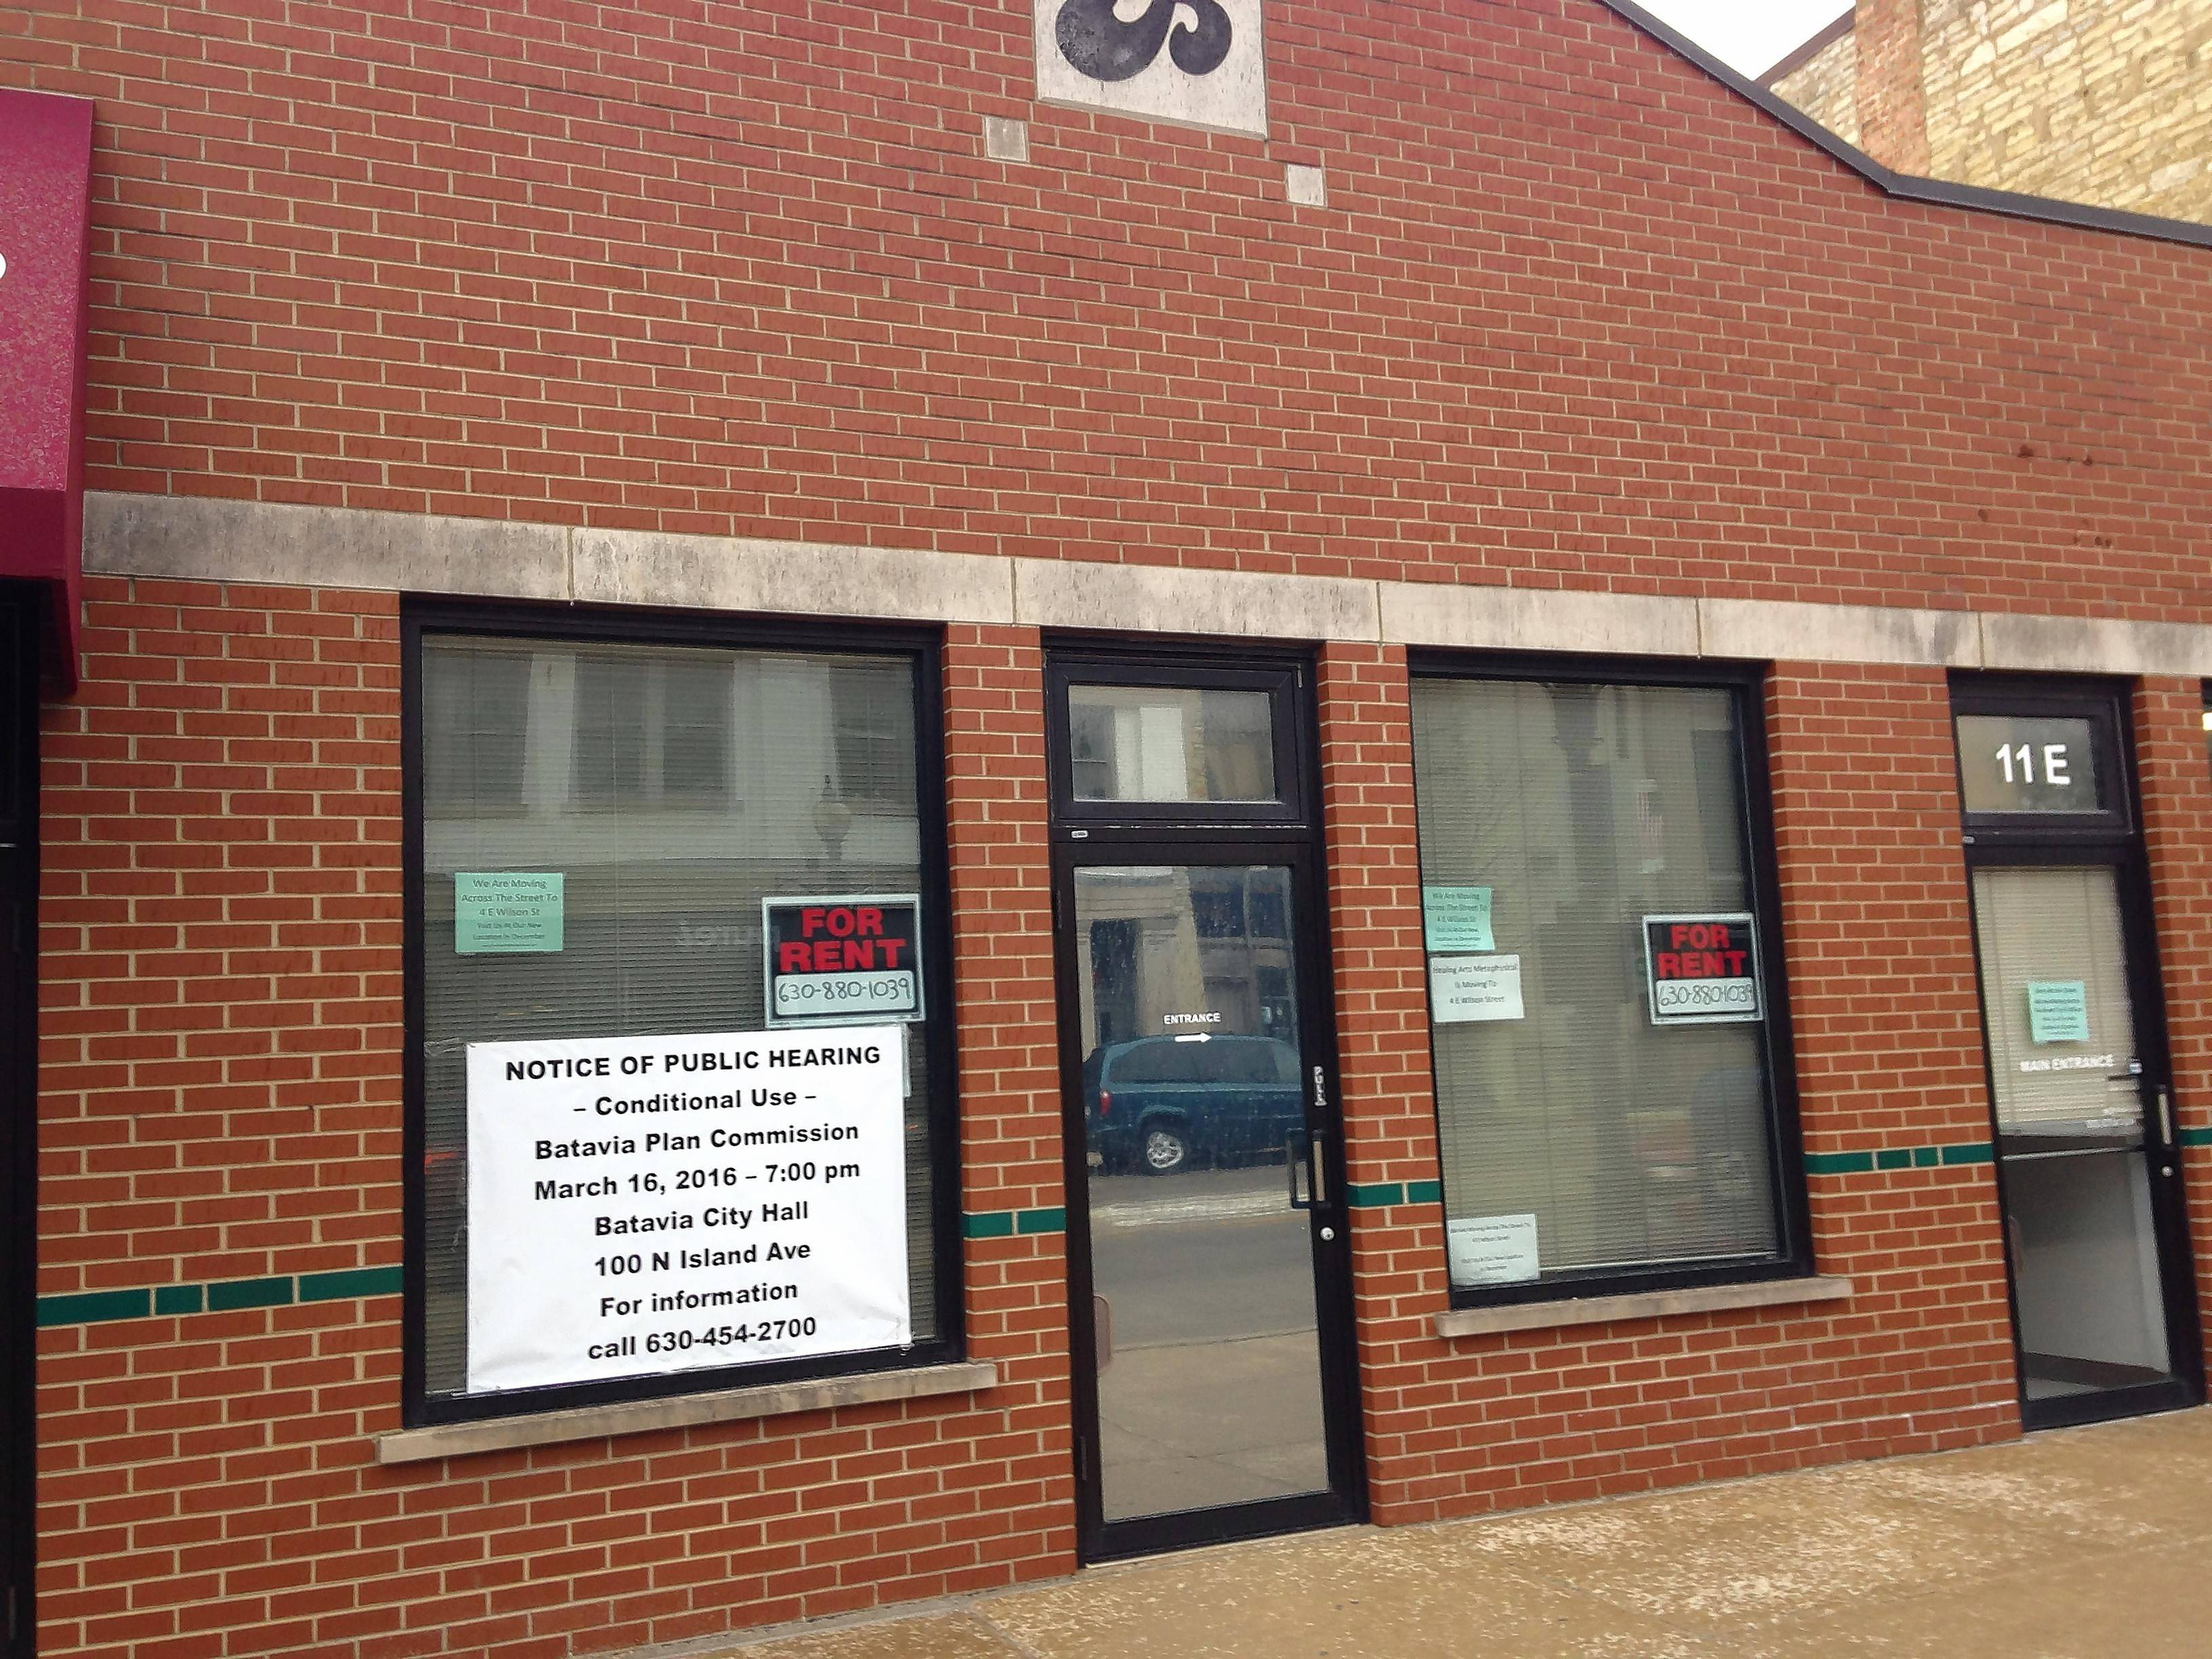 Batavia postpones vote on massage business permit